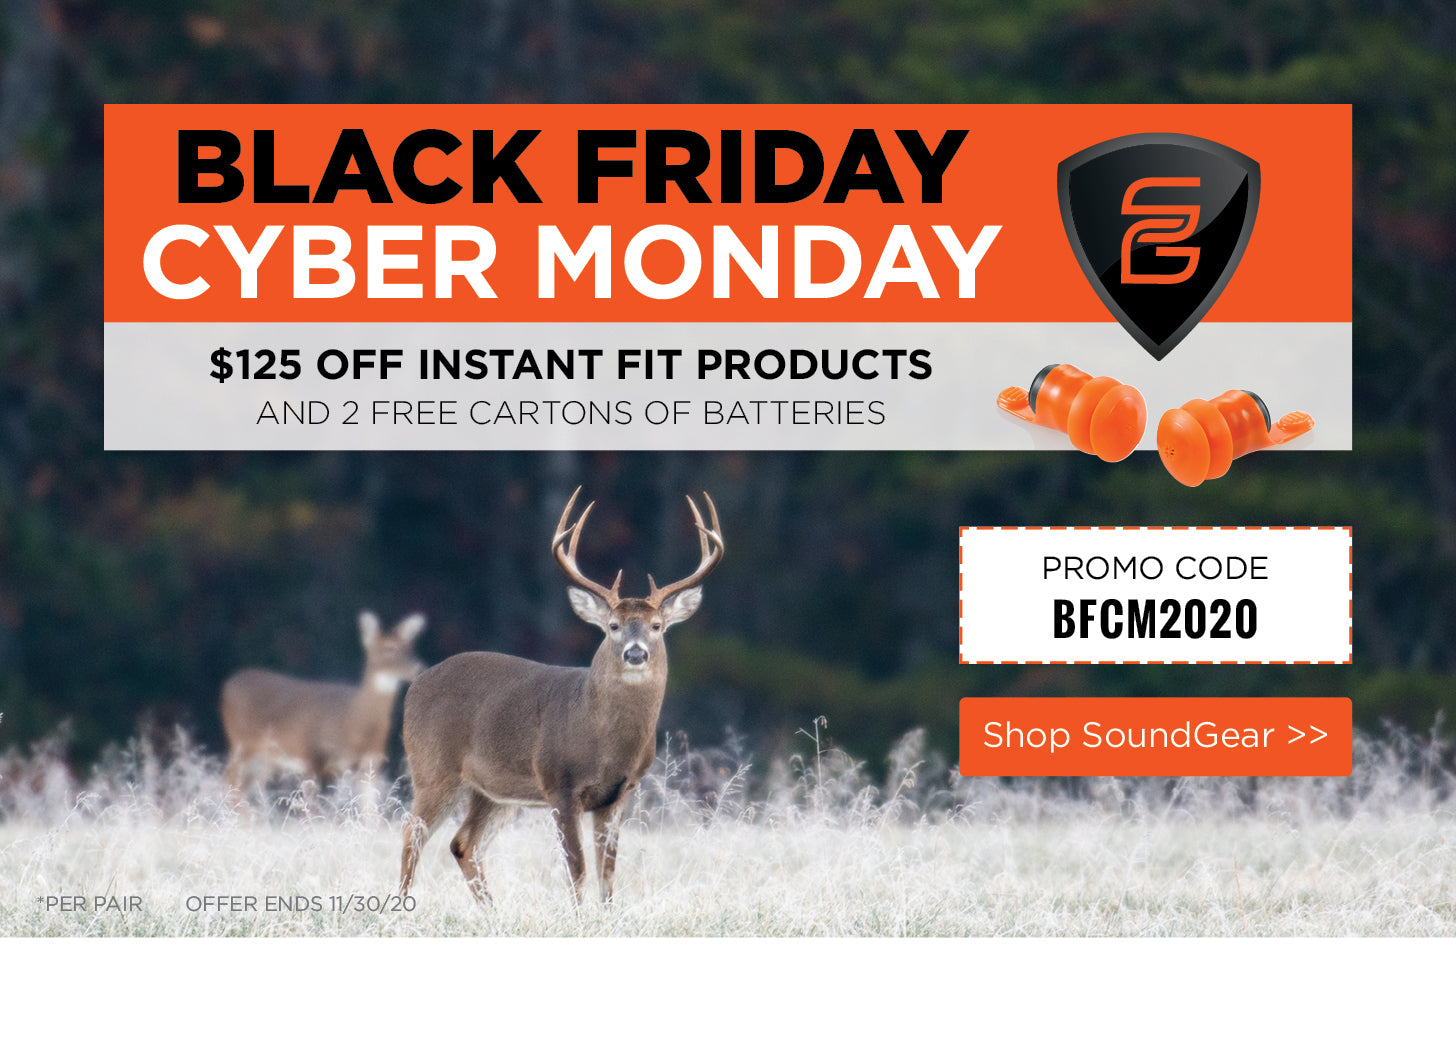 Black Friday/Cyber Monday $150 off Instant Fit products and 2 free cartons of batteries. Promo code: BFCM2020 Click to shop SoundGear